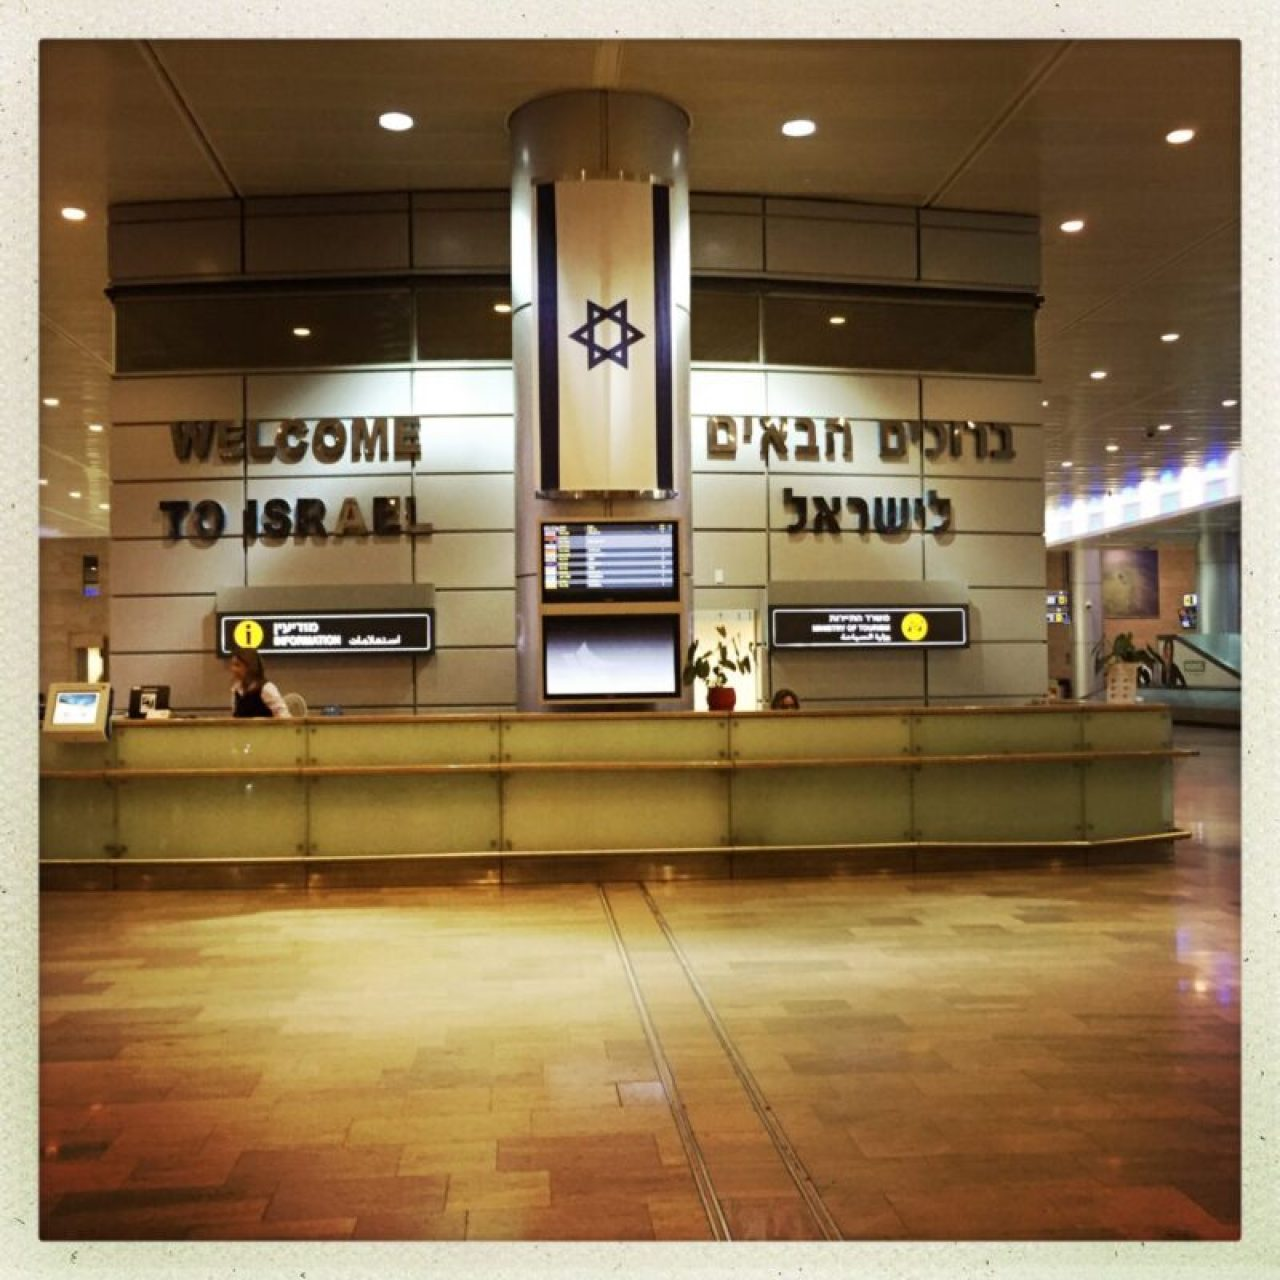 best airline to fly to israel, worst airline to fly to israel, tel aviv airport, ben gurion airport